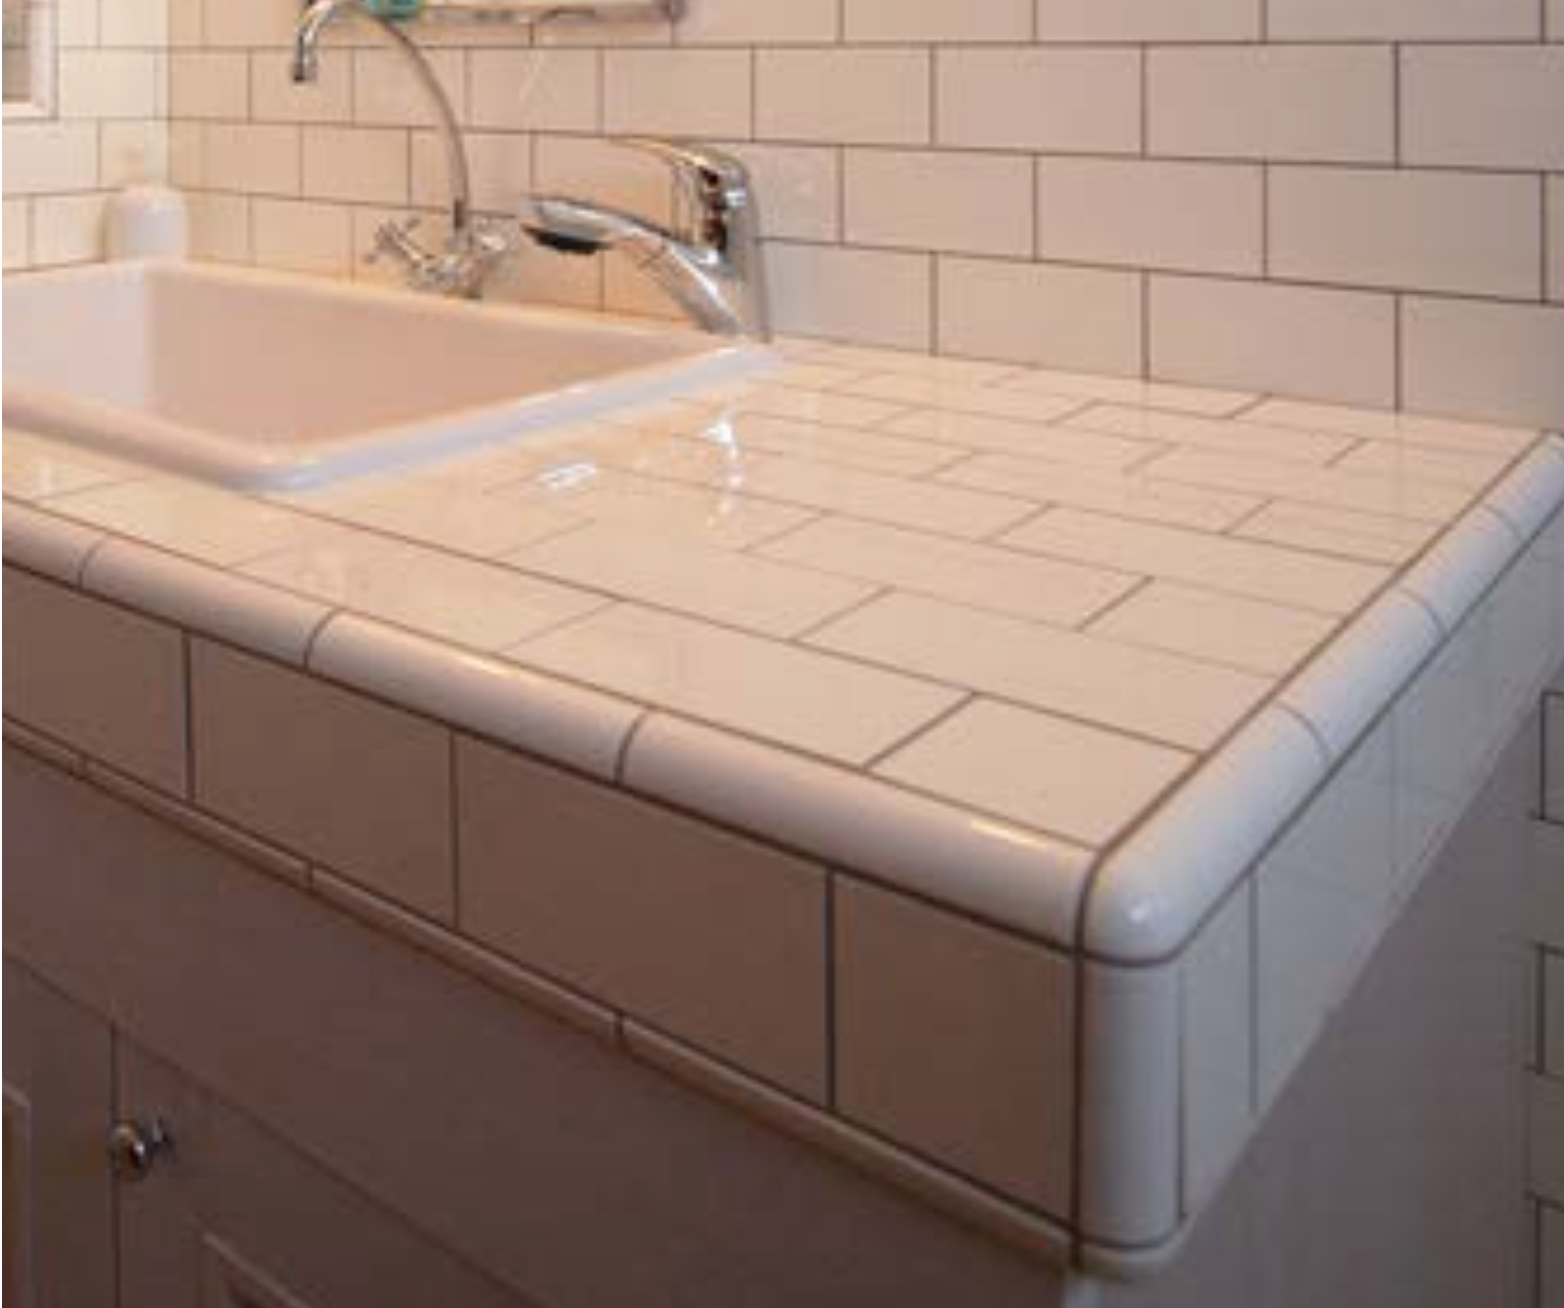 Subway Tile Counter Trimmed With Quarter Round Tiles Can Make Wall Like This As Well Kg Kitchen And Bath Round Tiles Wall Trim